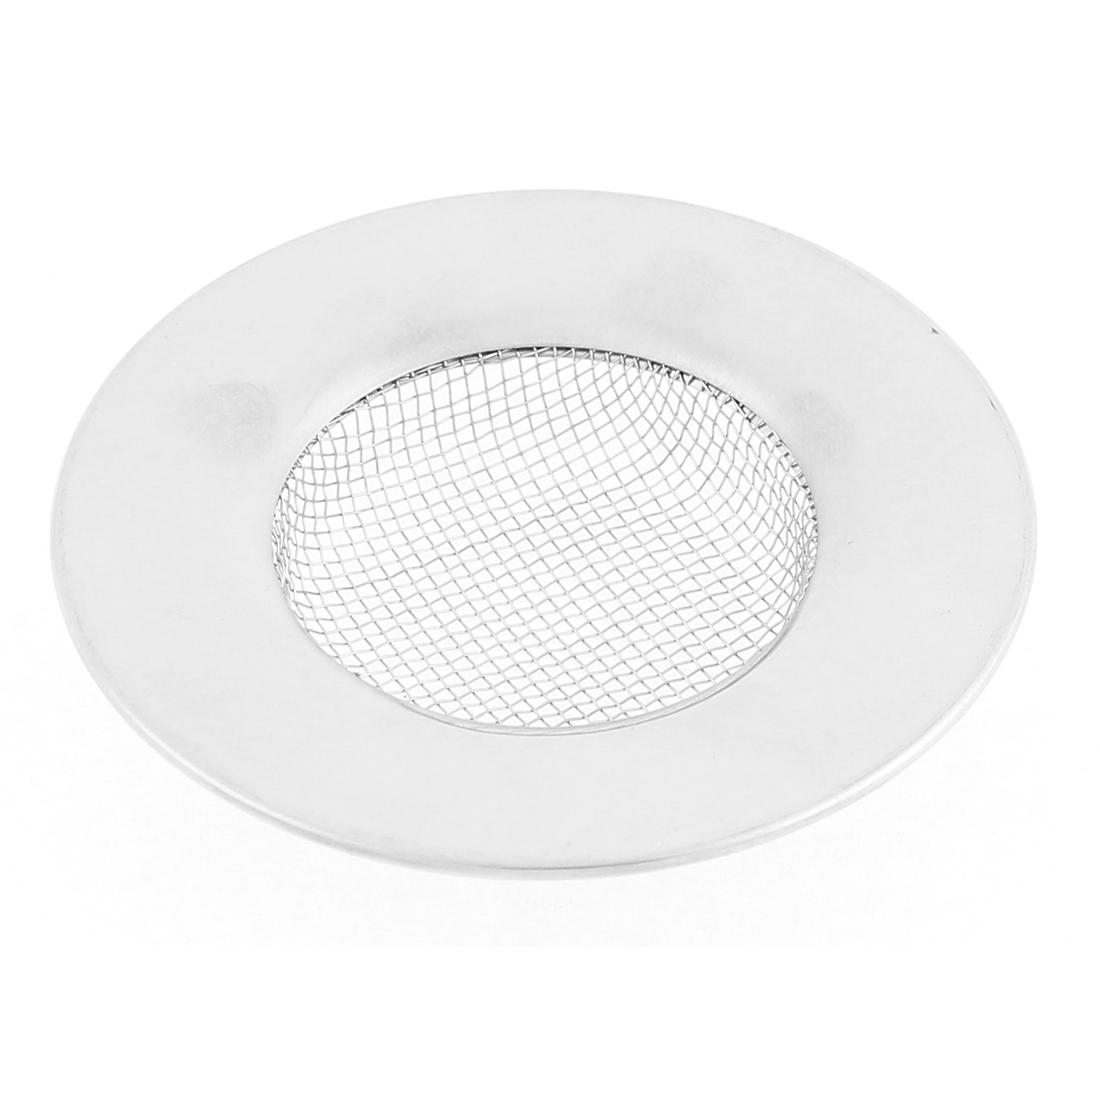 Kitchen 304 Stainless Steel Mesh Hole Sink Drain Strainer 3 Inch Dia Silver Tone